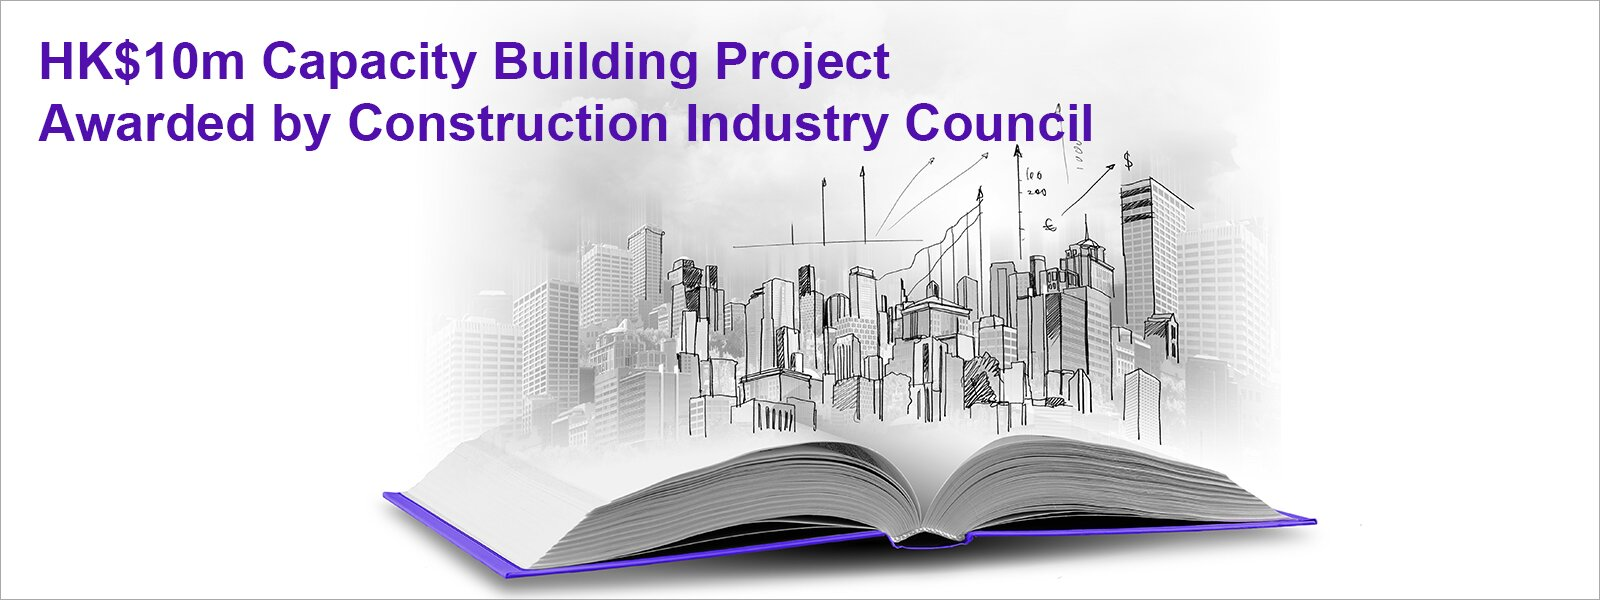 HK$10m Capacity Building Project Awarded by Construction Industry Council